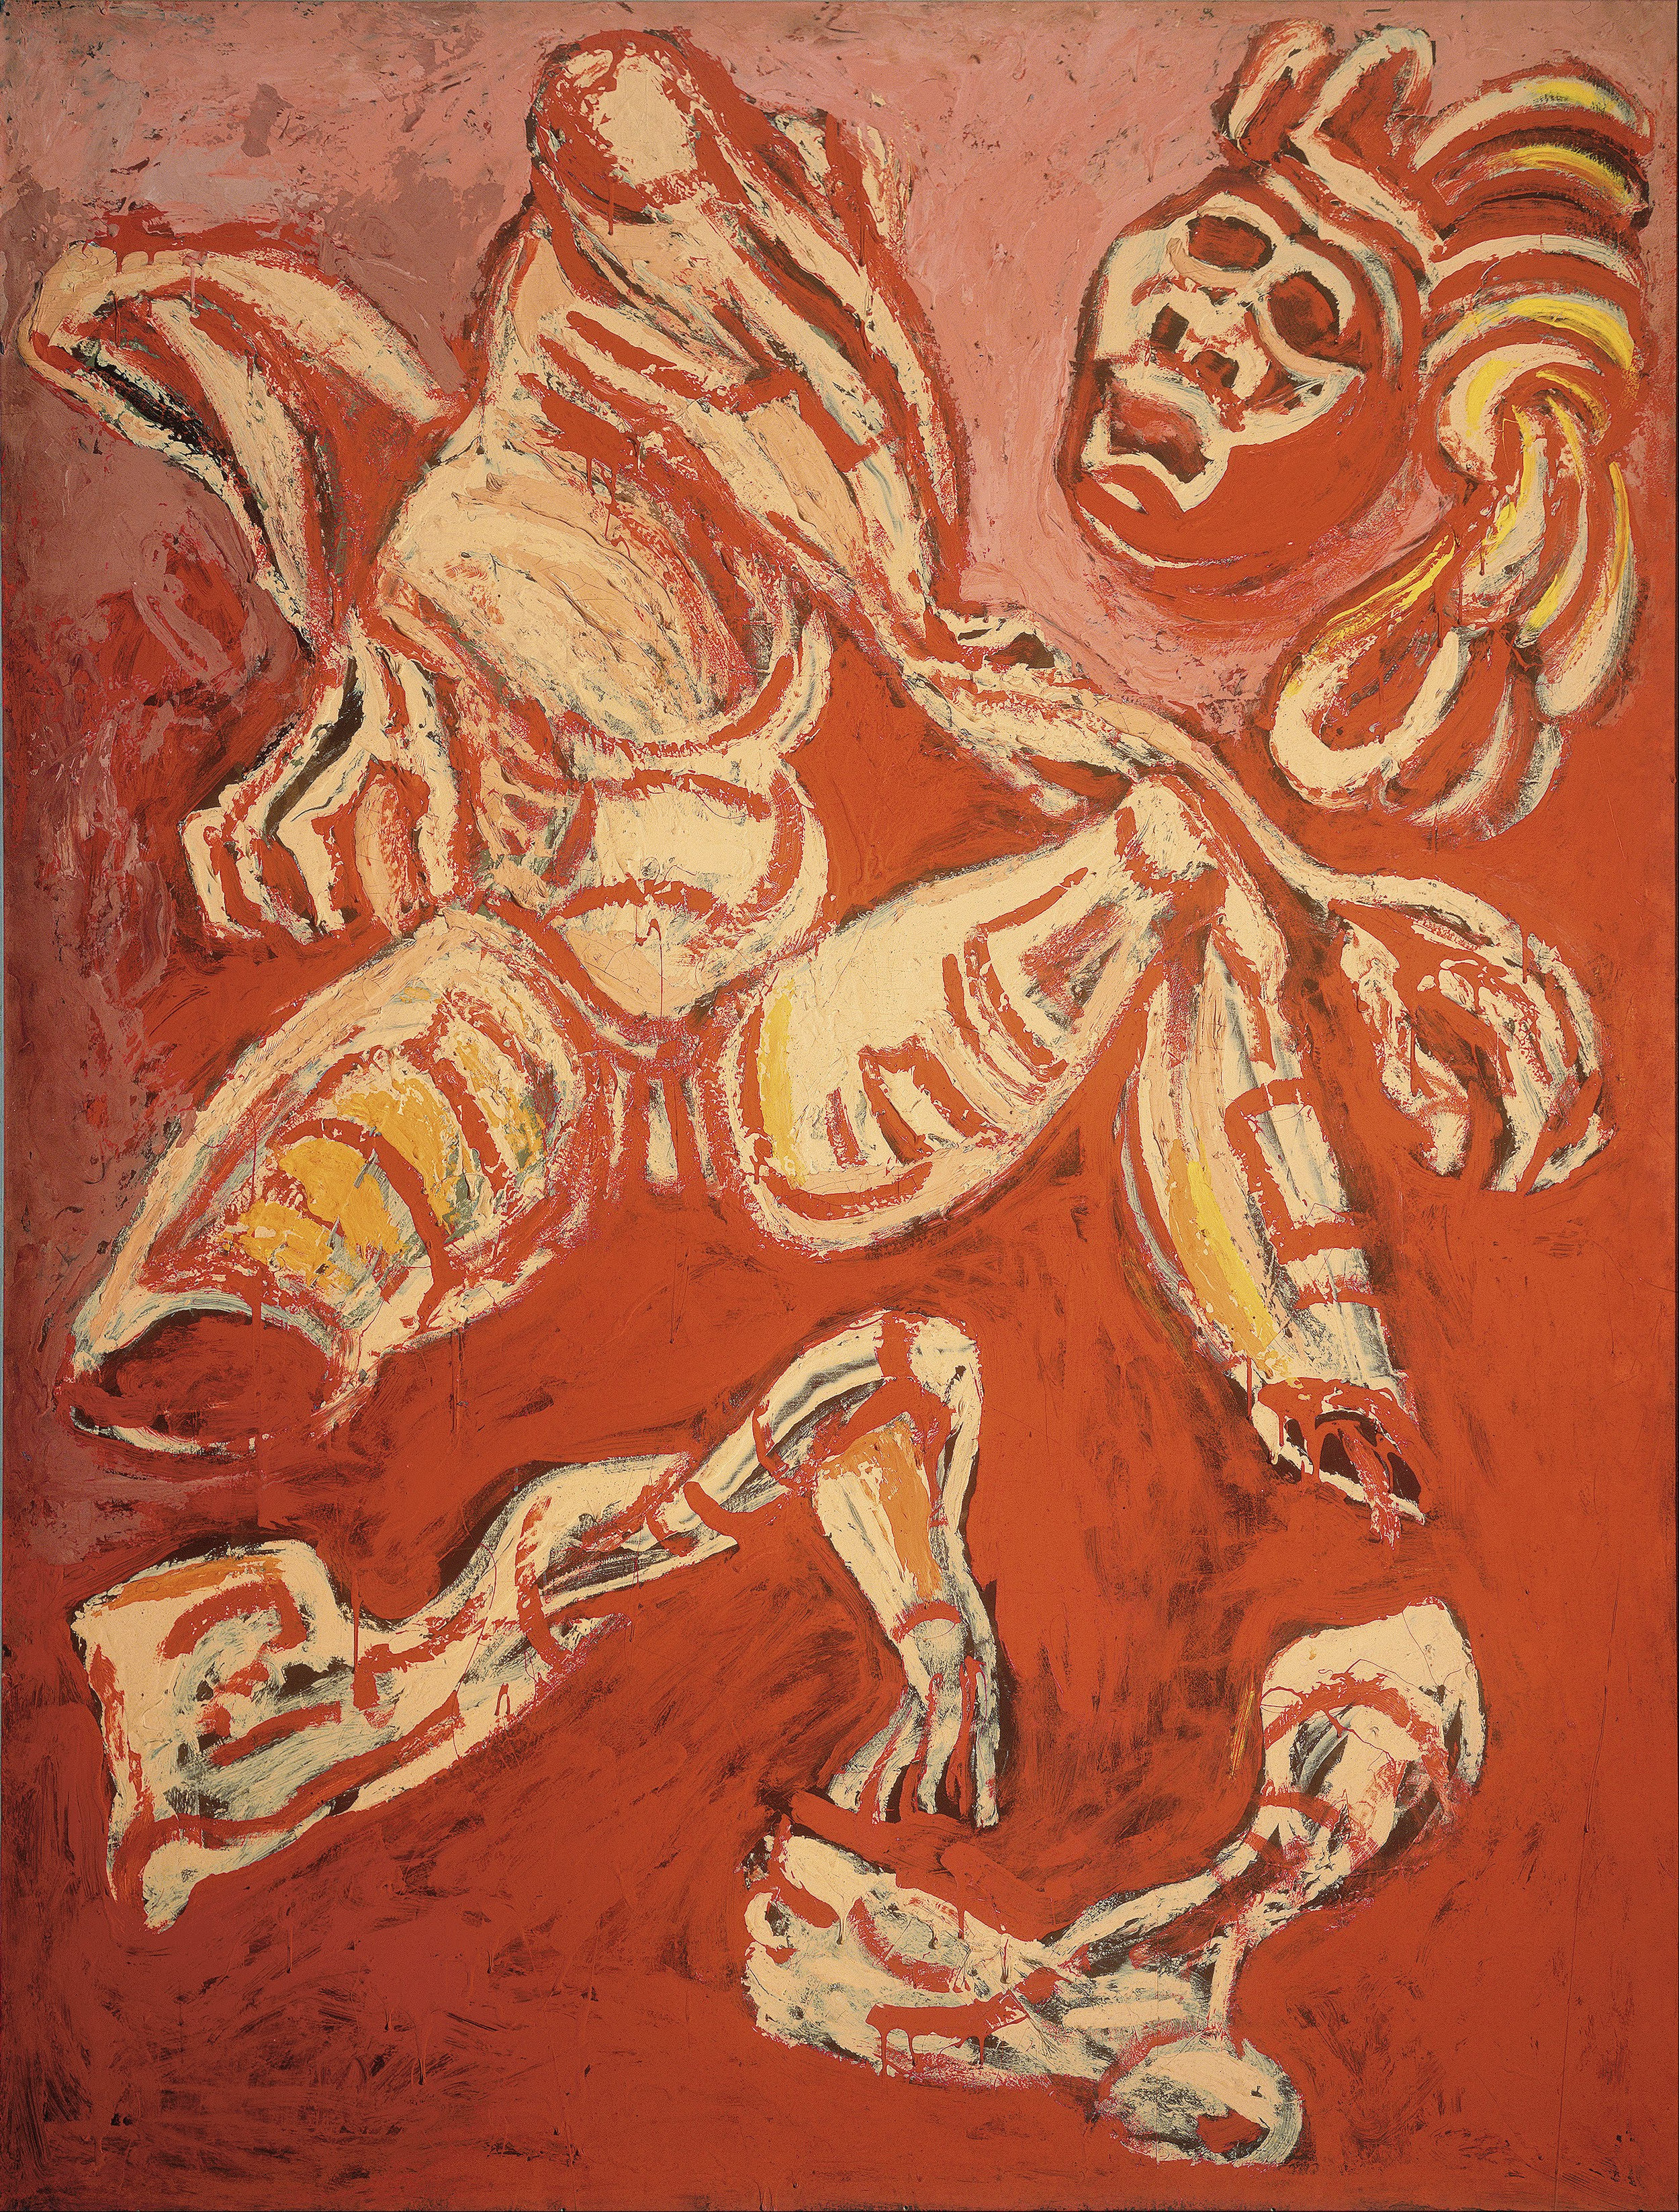 José_Clemente_Orozco_-_The_Dismembered_Man,_from_the_Los_teules_series_-_Google_Art_Project.jpg